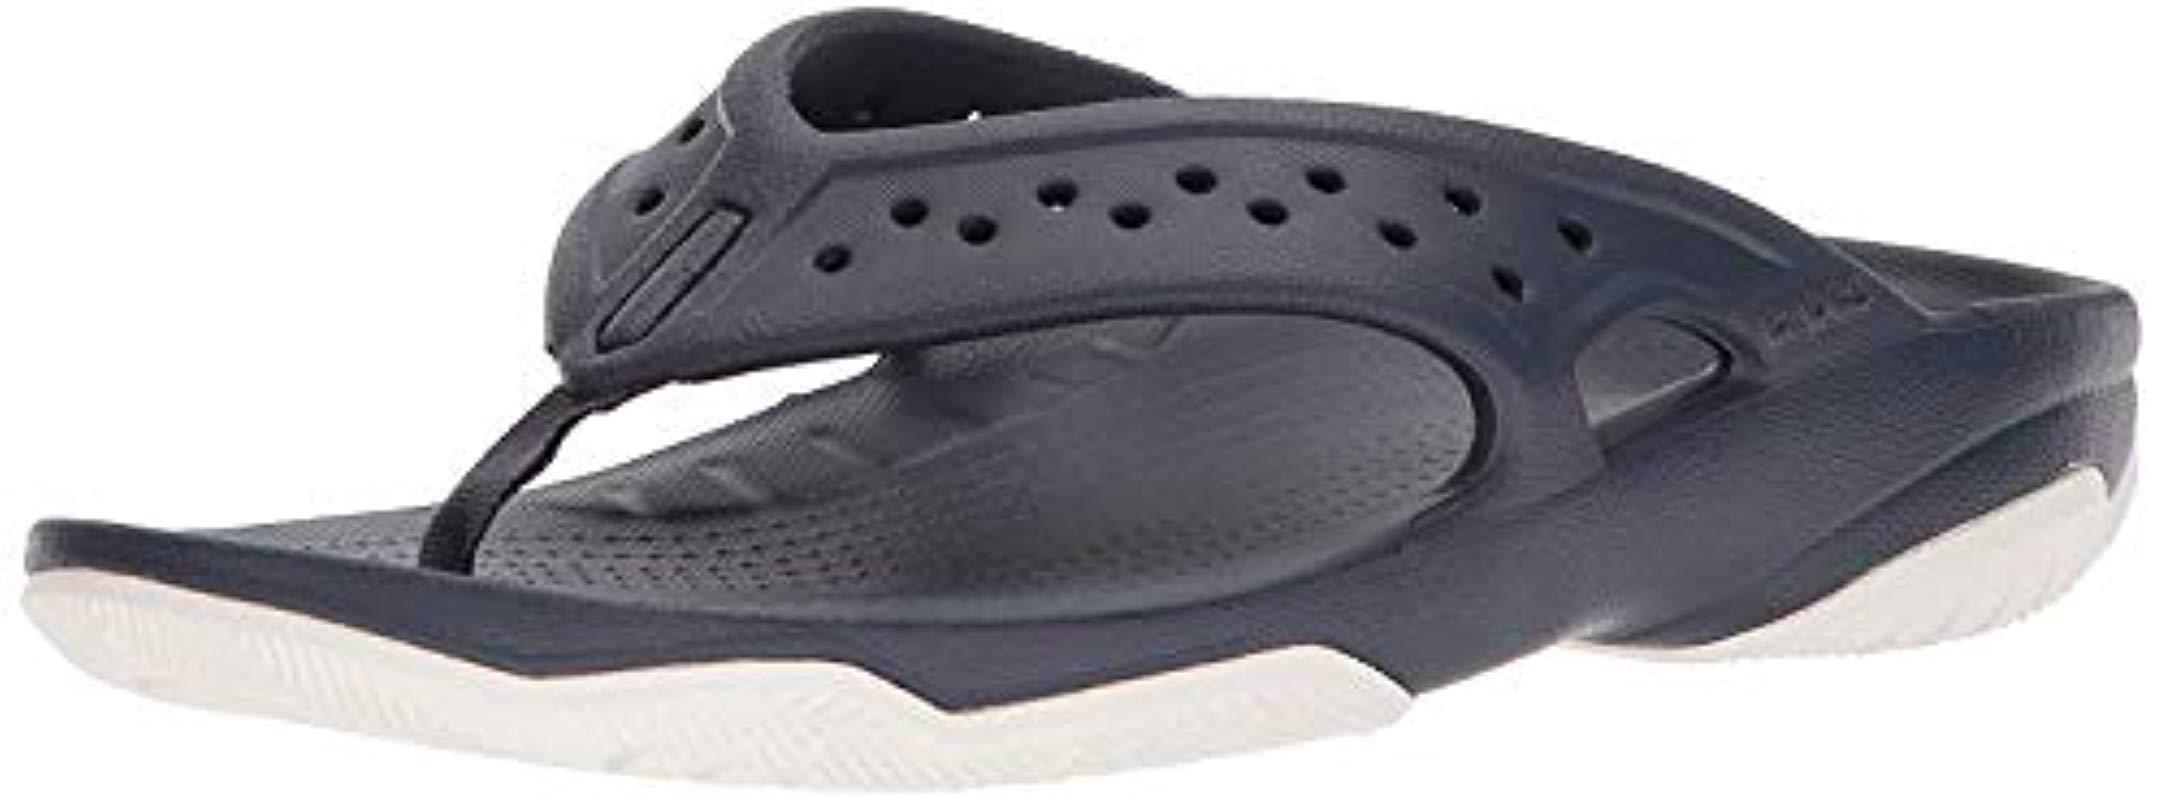 fde72061f3 Lyst - Crocs™ Swiftwater Deck Flip in Blue for Men - Save 50.0%